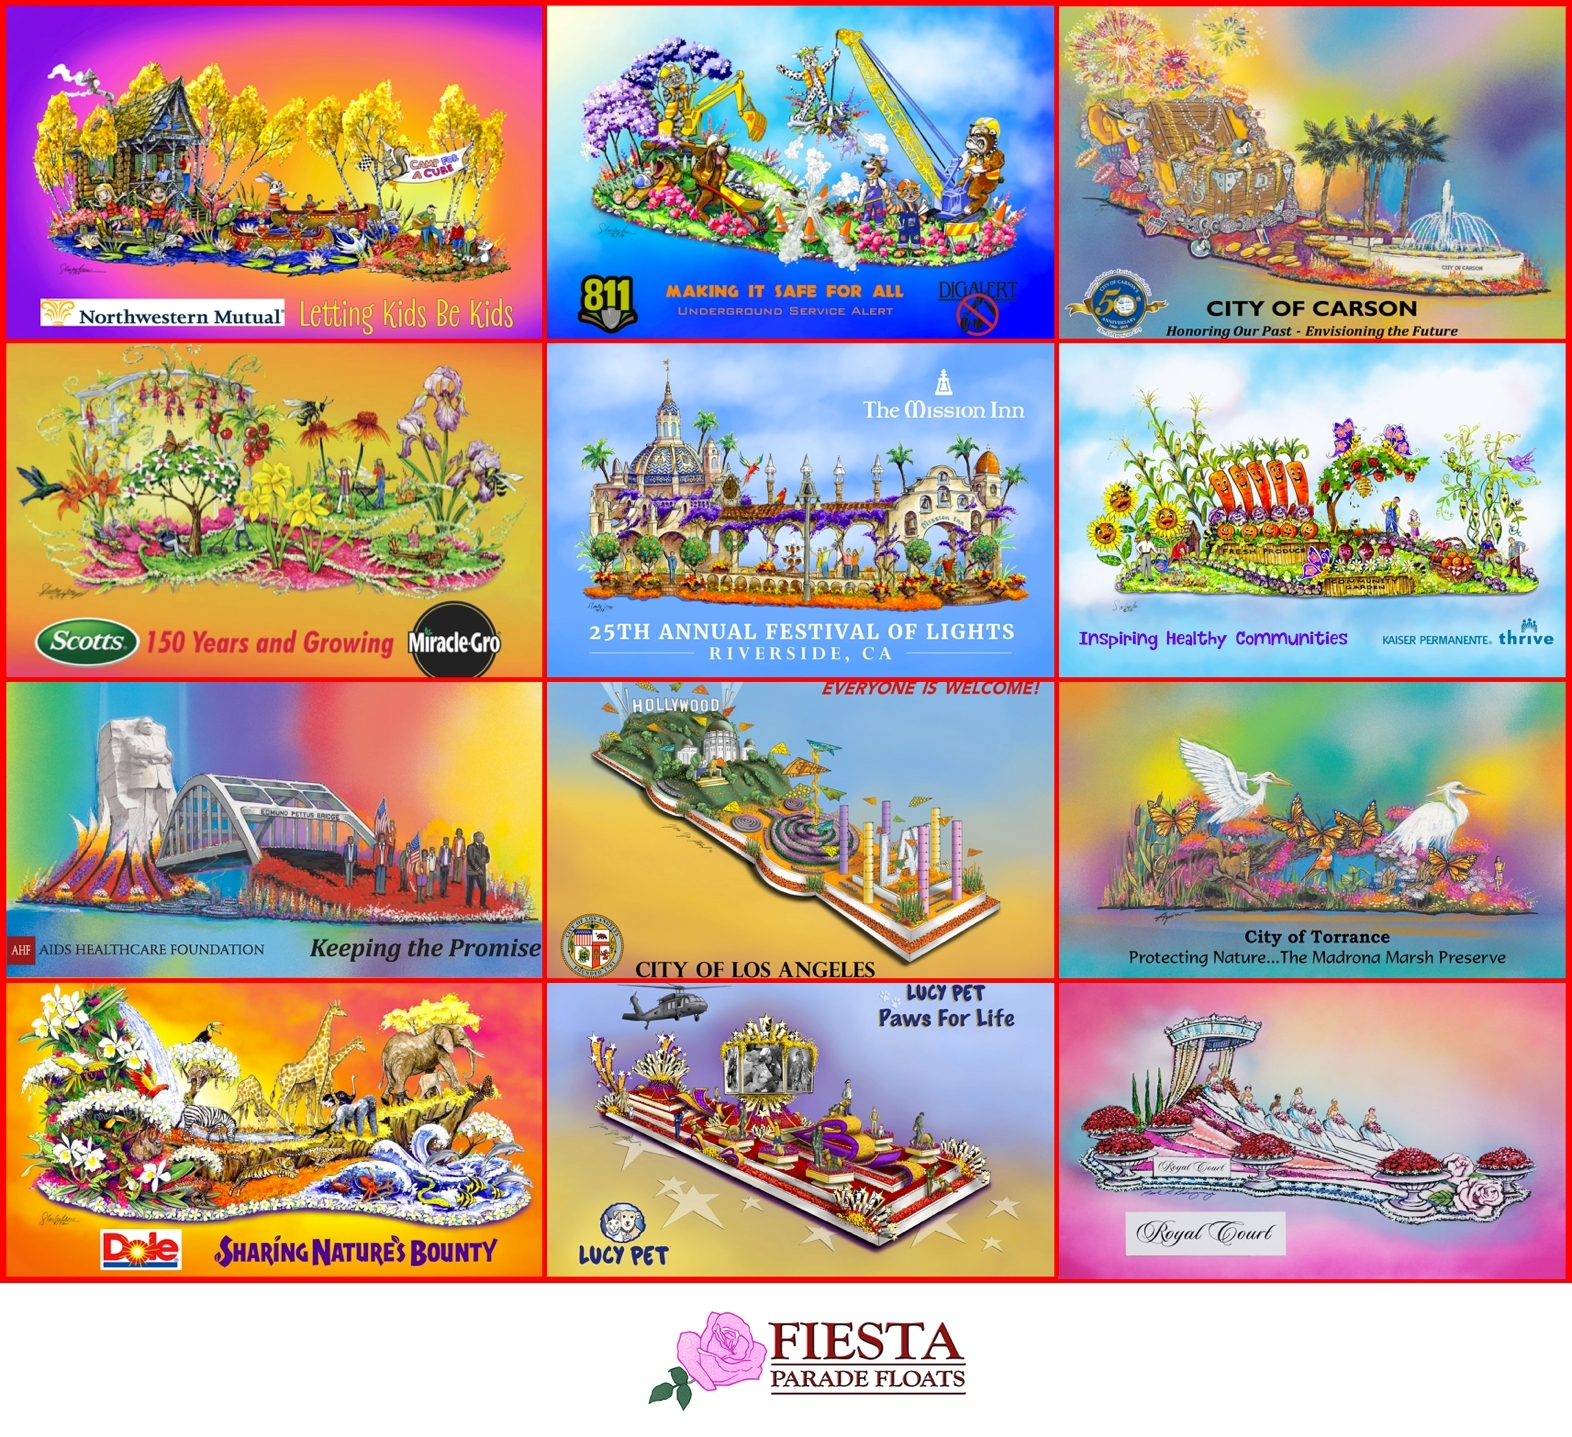 Fiesta Parade Floats Celebrates Its 30th Year As The Rose Parade S